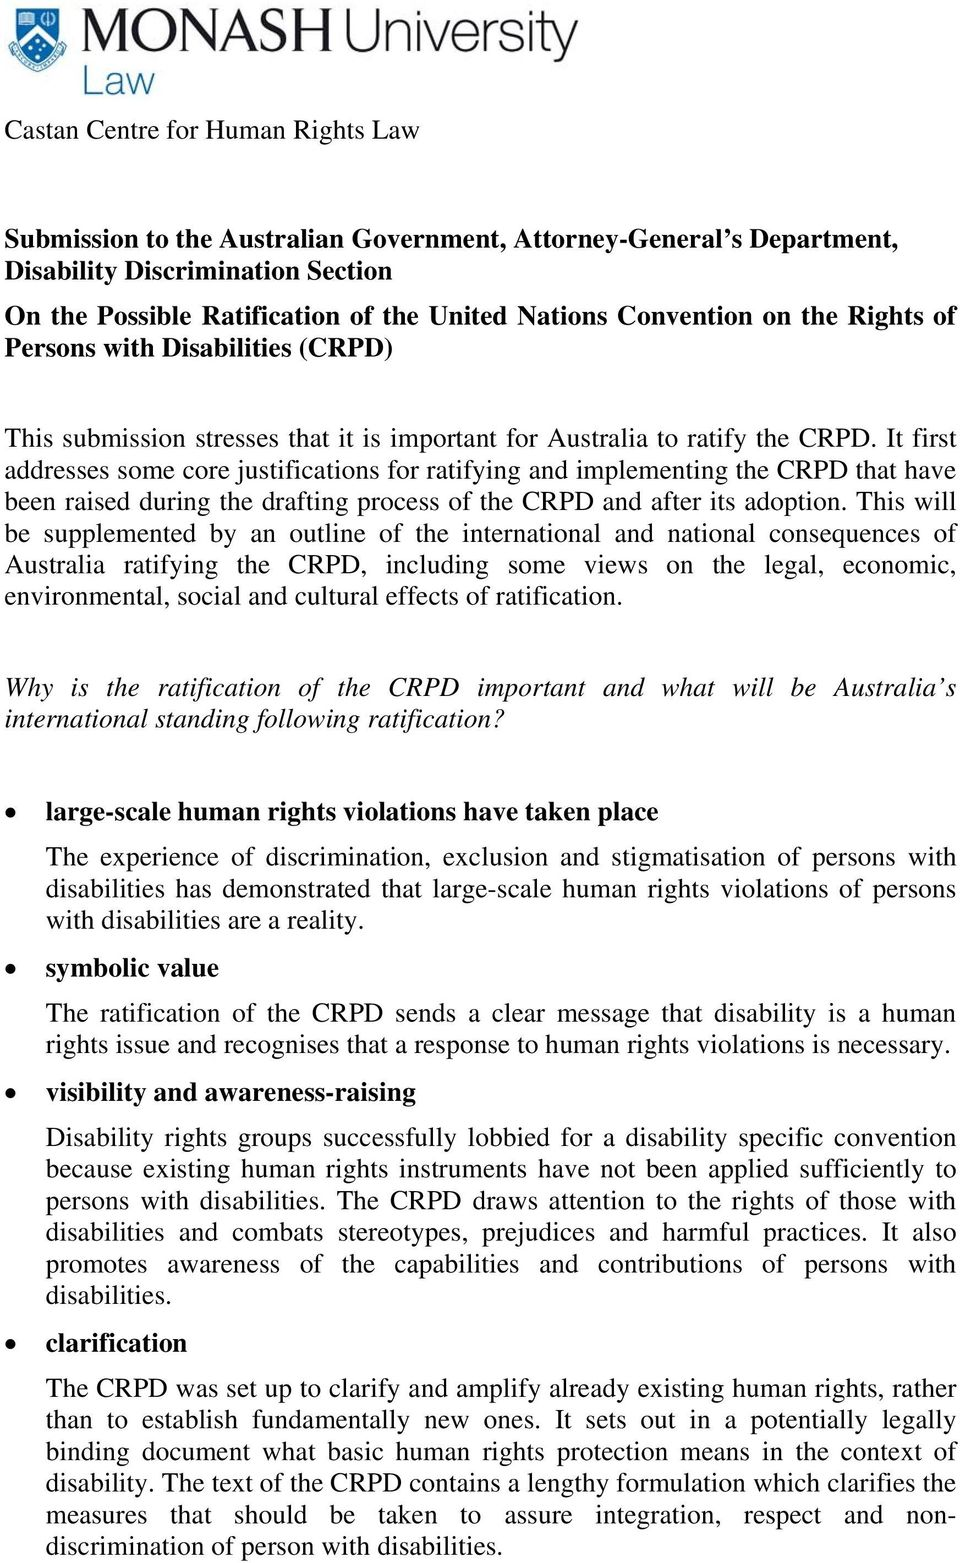 It first addresses some core justifications for ratifying and implementing the CRPD that have been raised during the drafting process of the CRPD and after its adoption.